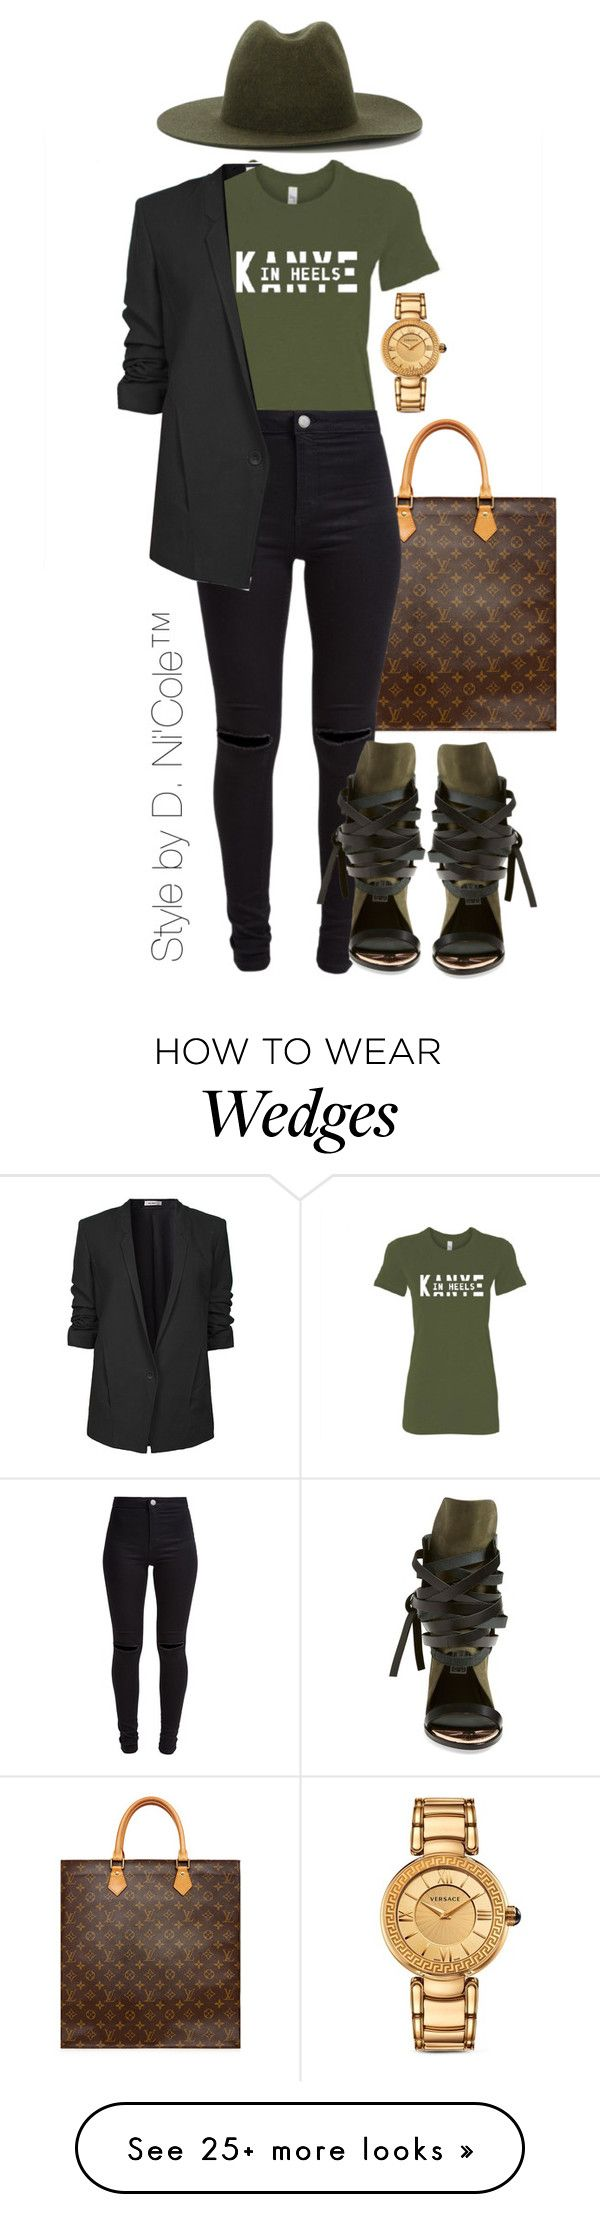 """""""Untitled #3244"""" by stylebydnicole on Polyvore featuring Louis Vuitton, New Look, Helmut Lang, Études, Ivy Kirzhner and Versace"""